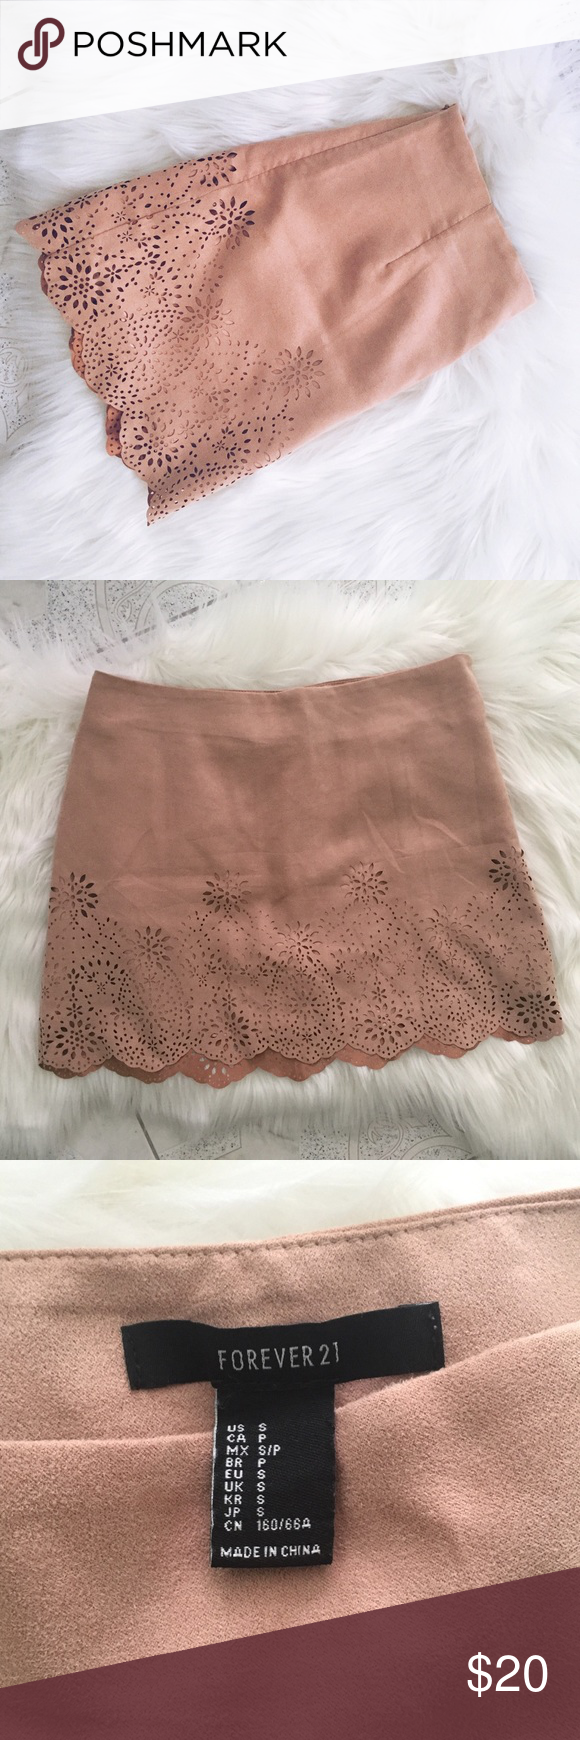 """Forever 21 Faux Suede Scalloped Skirt F21 Faux Suede Scalloped Skirt. Size S. Color most accurately shown in Pic 3. Never been worn. I'm 4'10"""" and 105 lbs, and the skirt is a little too big in the waist for me. Material for Shell is 100% Polyester and Lining is 100% Polyester. Instructions state to Hand Wash Cold and Line Dry. Forever 21 Skirts"""